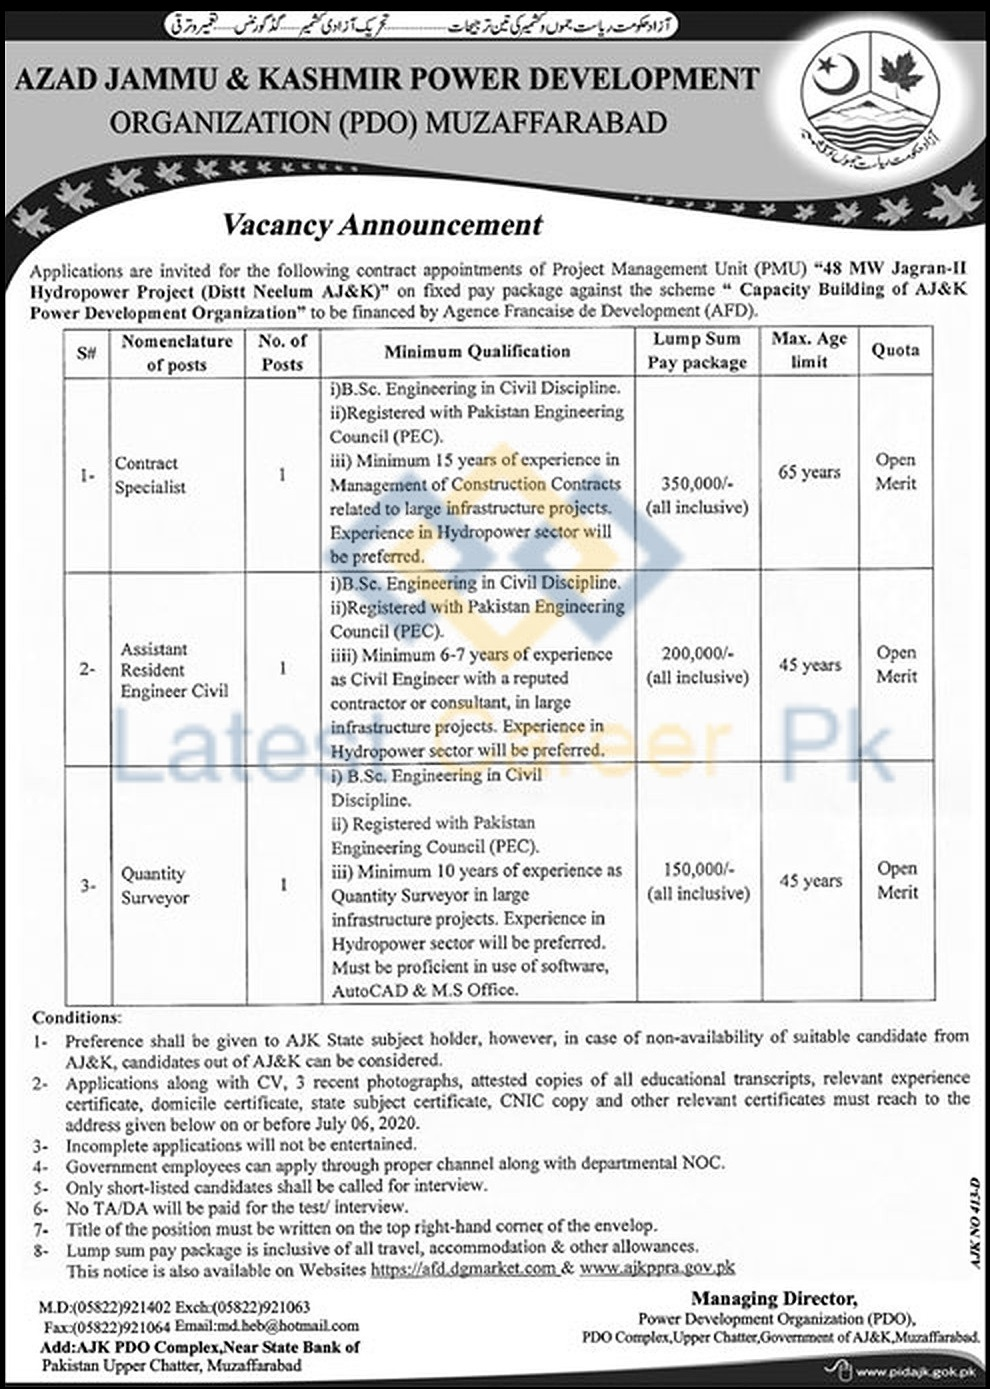 Azad-Jammu-and-Kashmir-Power-Development-Organization-Muzaffarabad-Jobs-05-Jun-2020